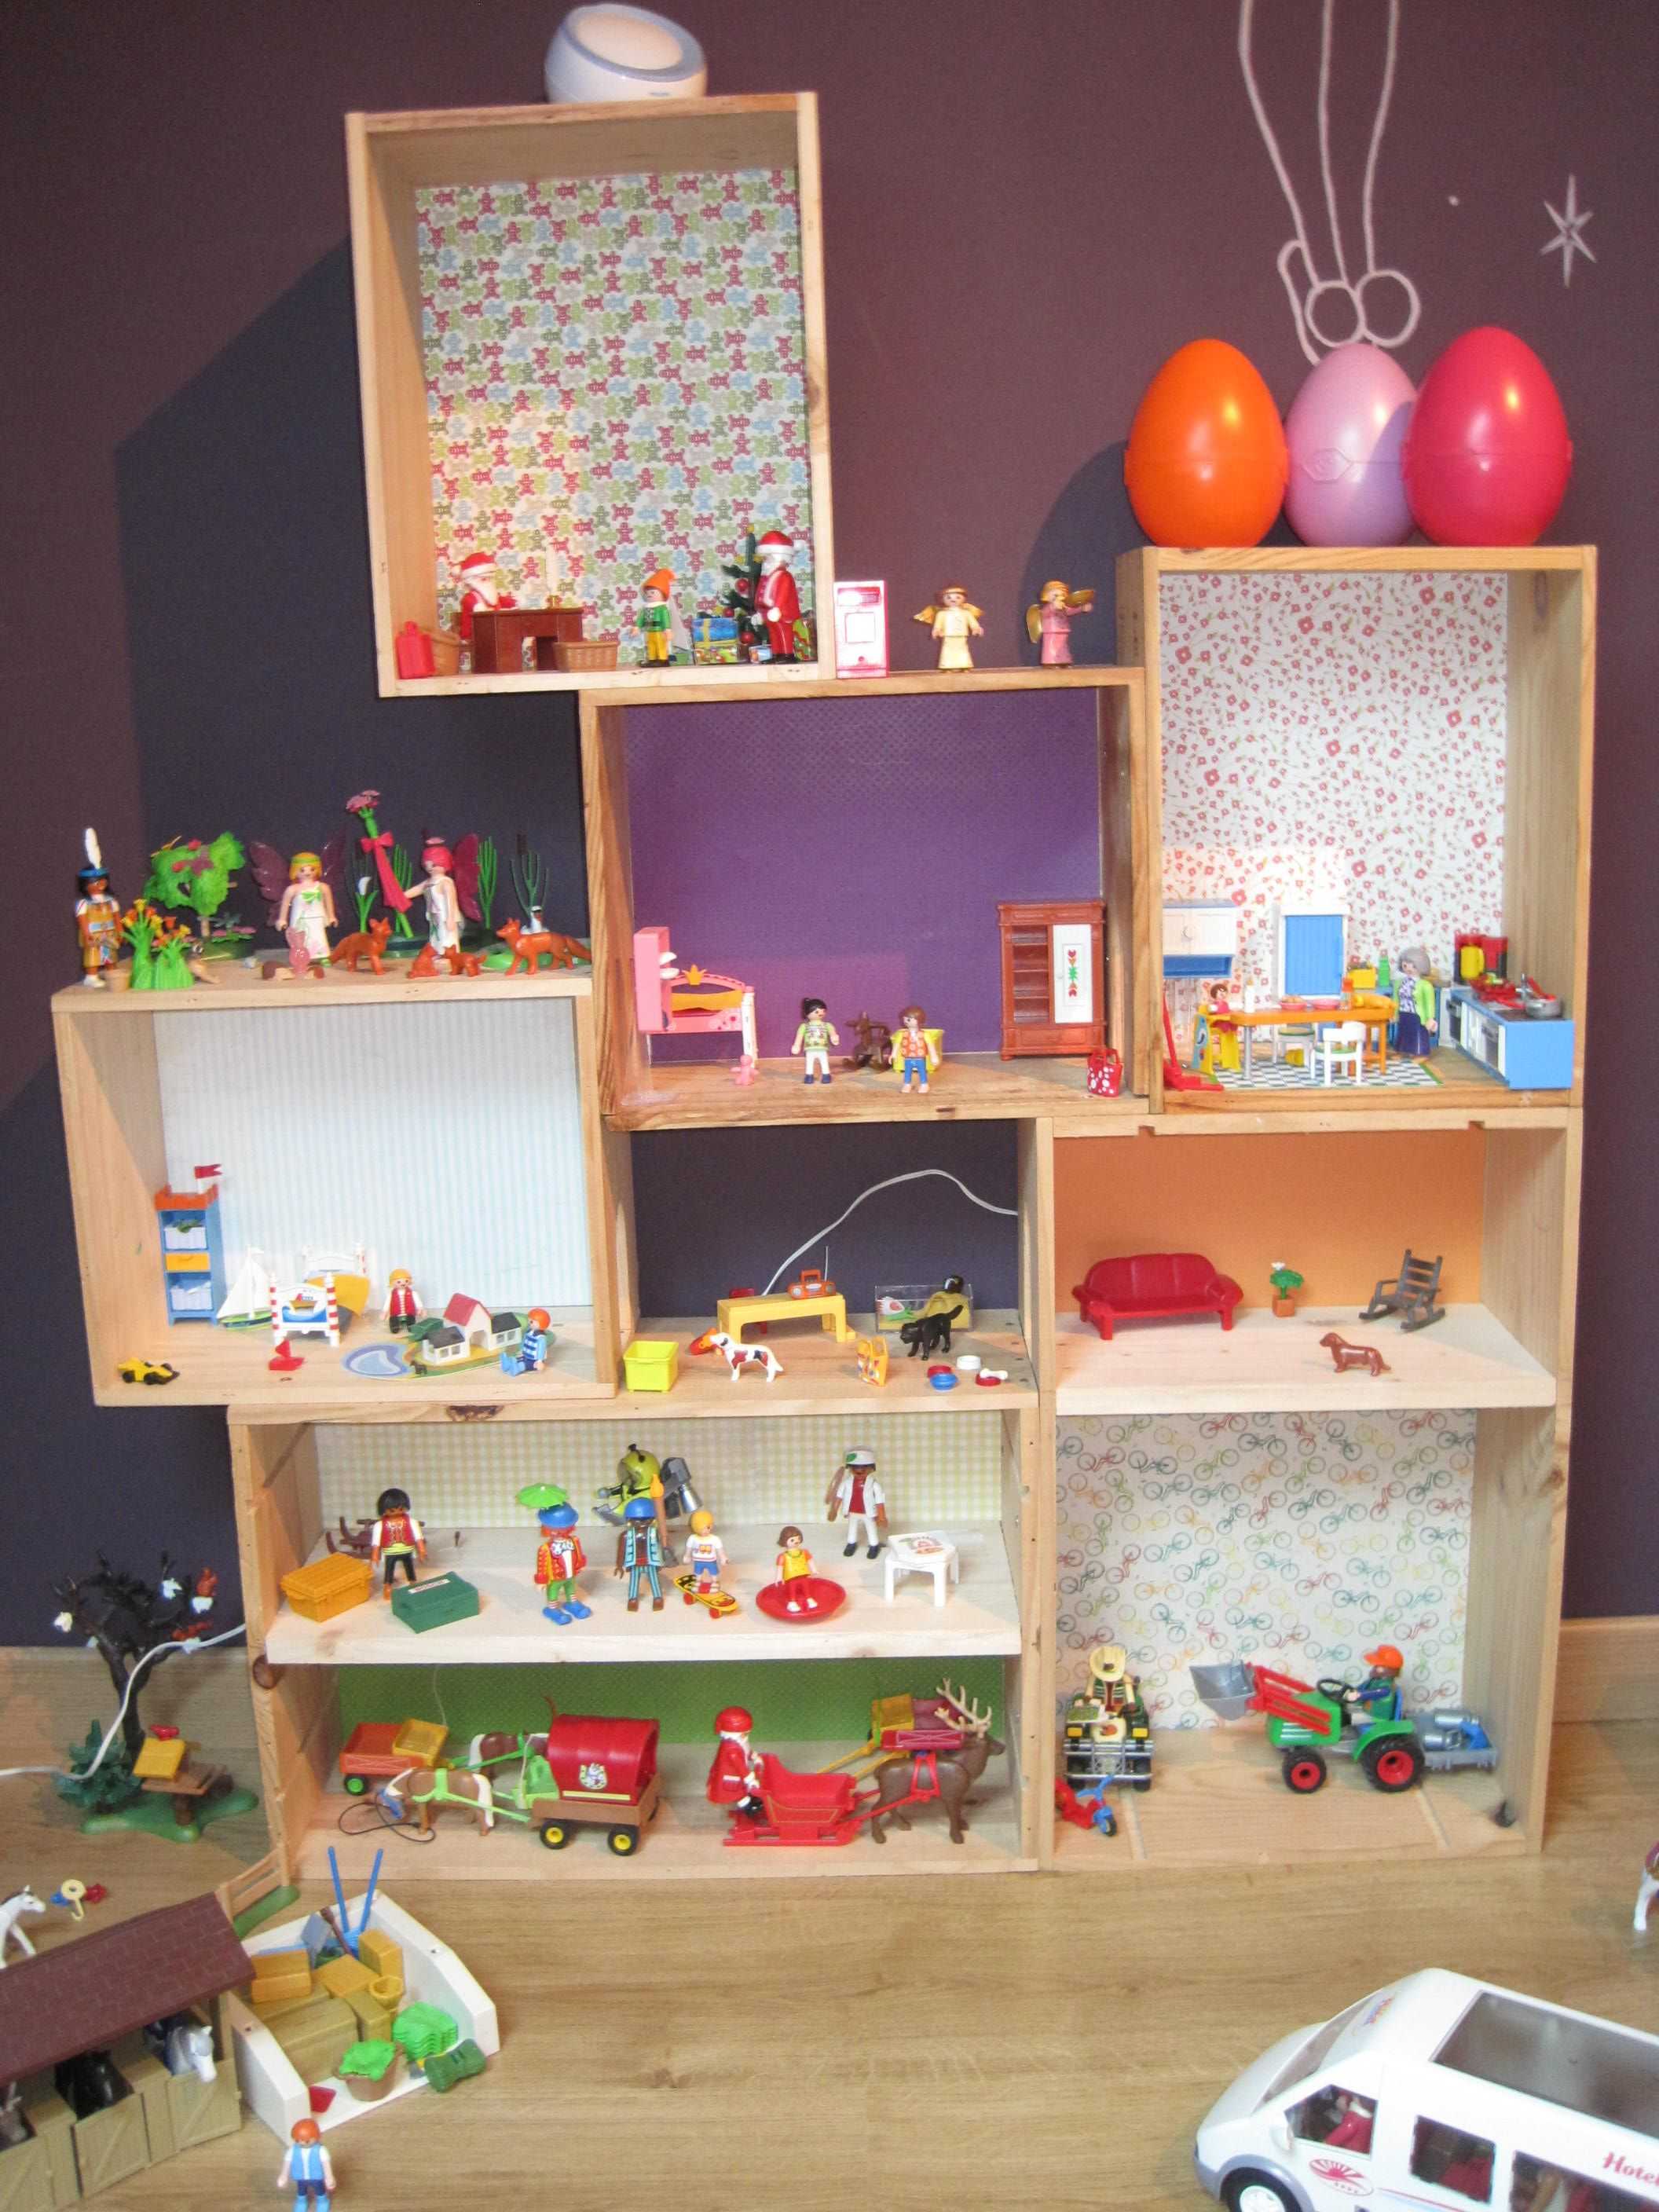 maison playmobil en caisses de vin projets essayer pinterest playmobil doll houses and. Black Bedroom Furniture Sets. Home Design Ideas